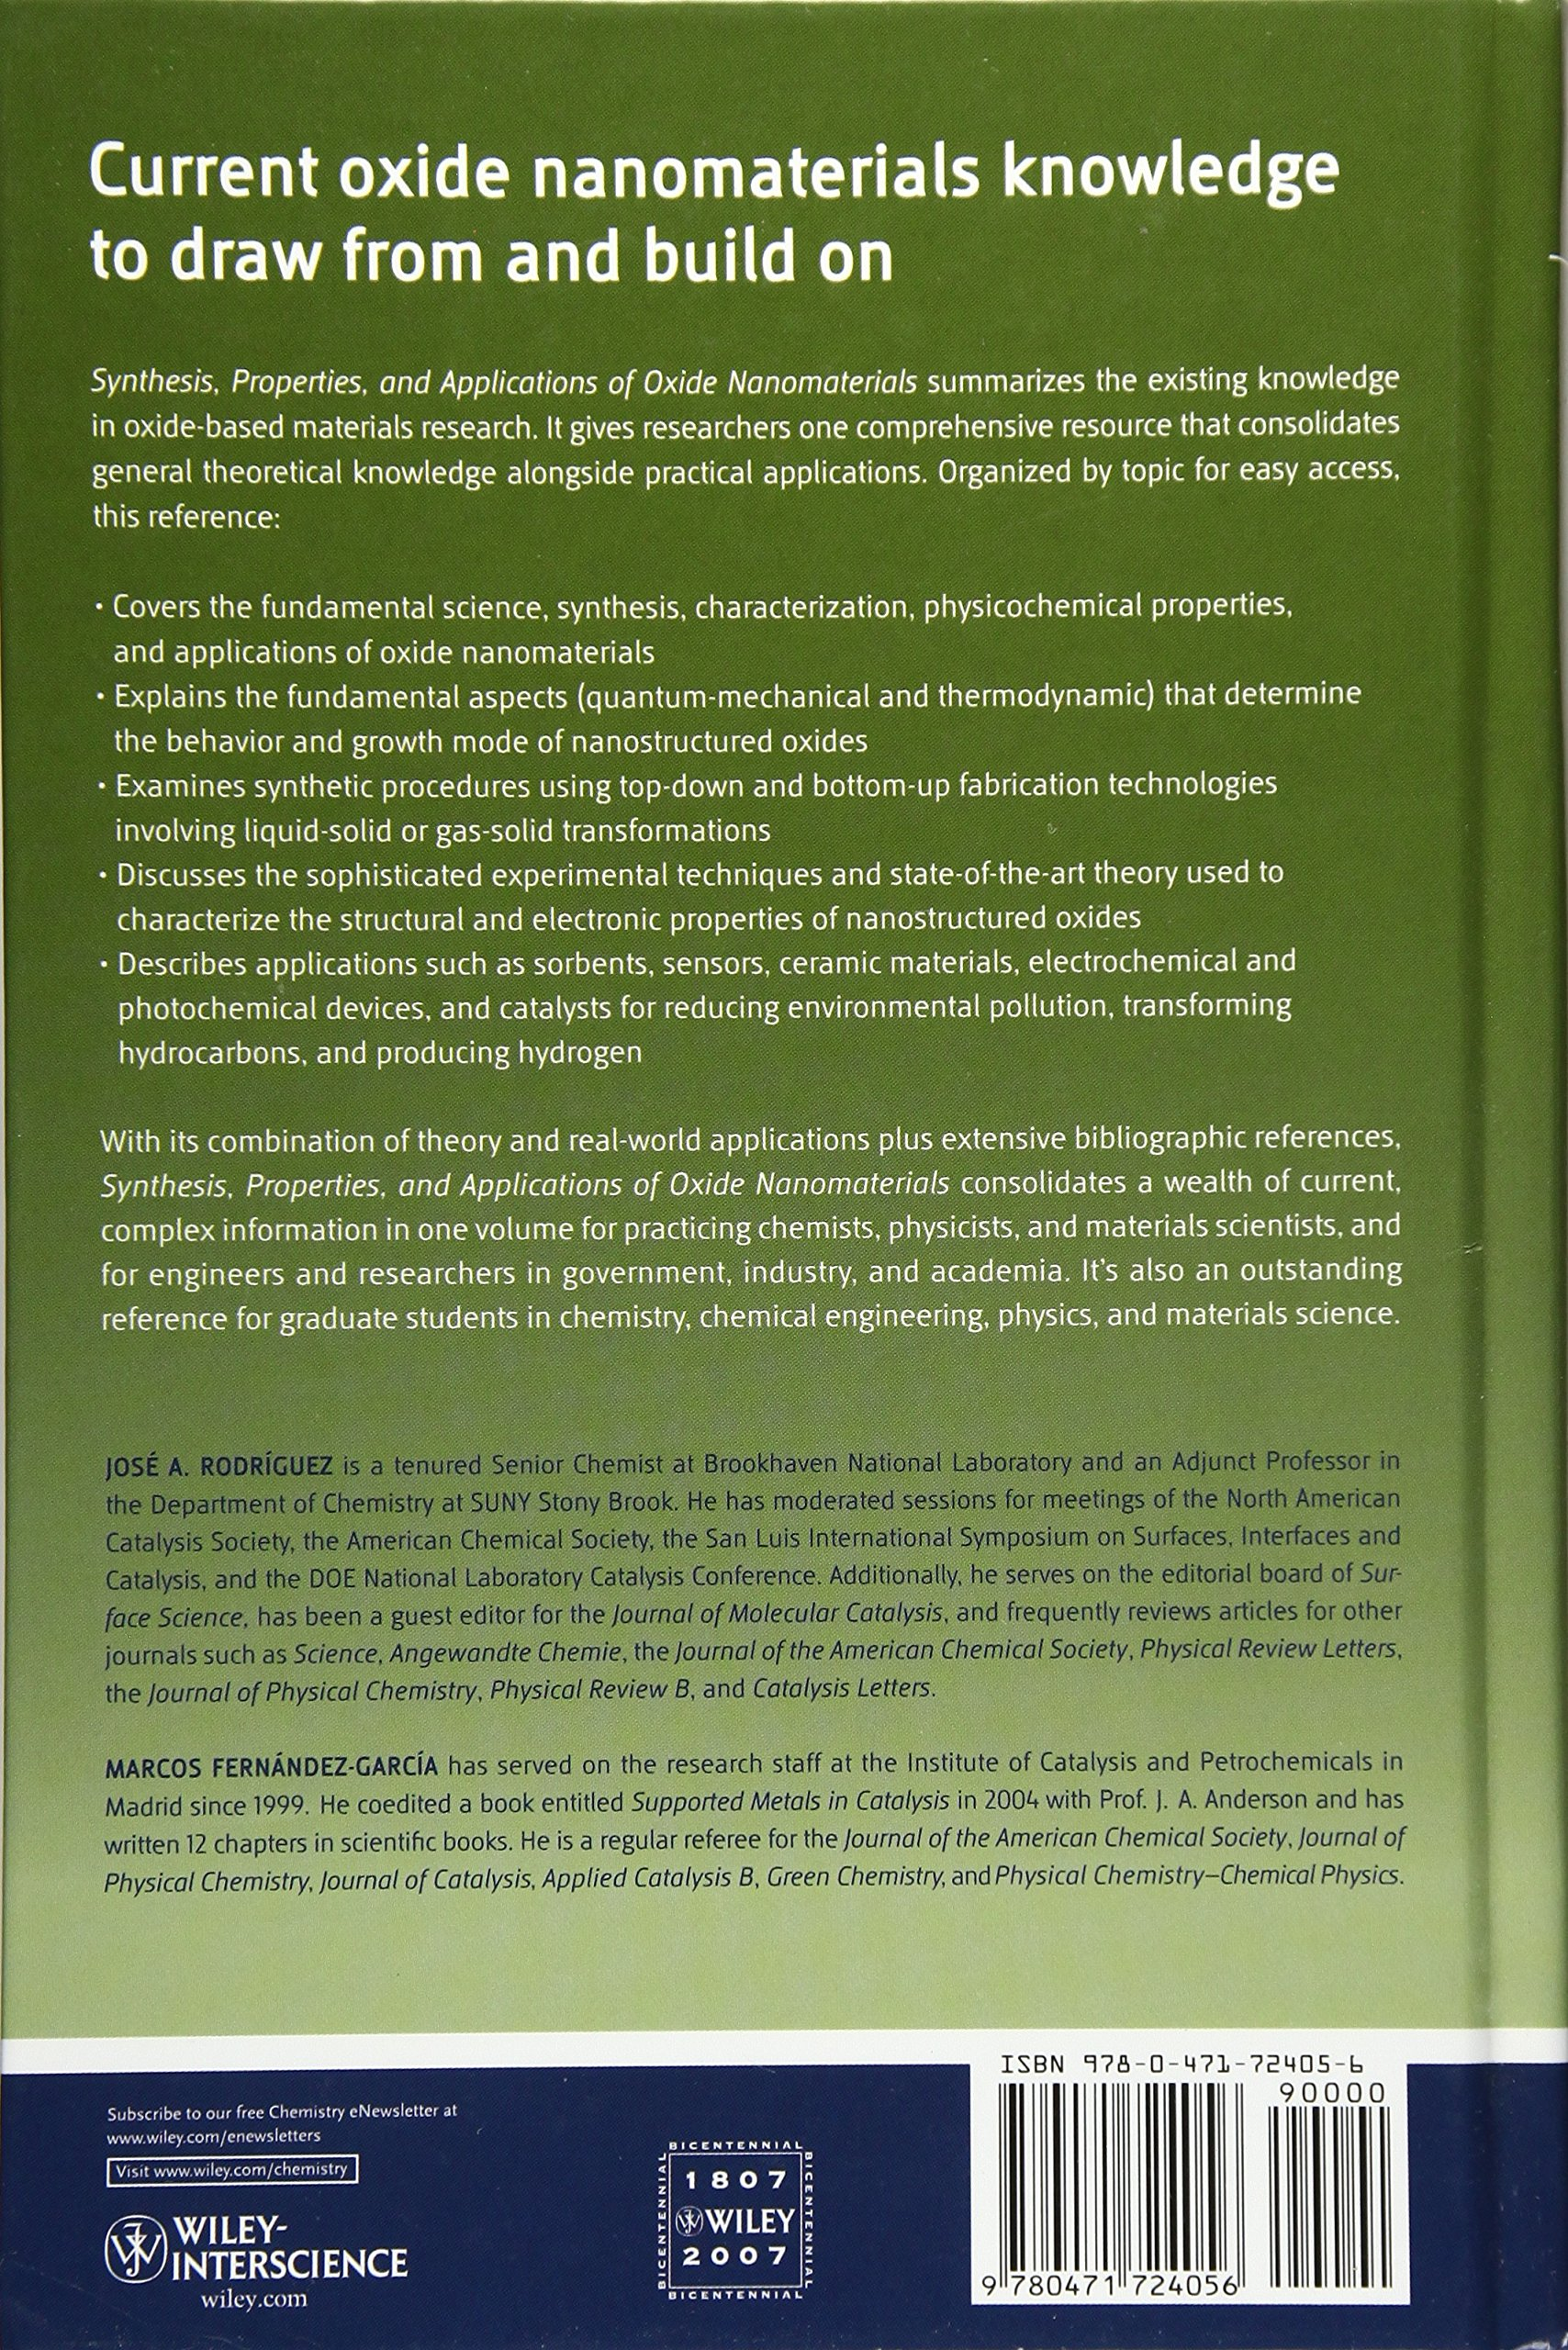 Buy Synthesis, Properties, and Applications of Oxide Nanomaterials ...